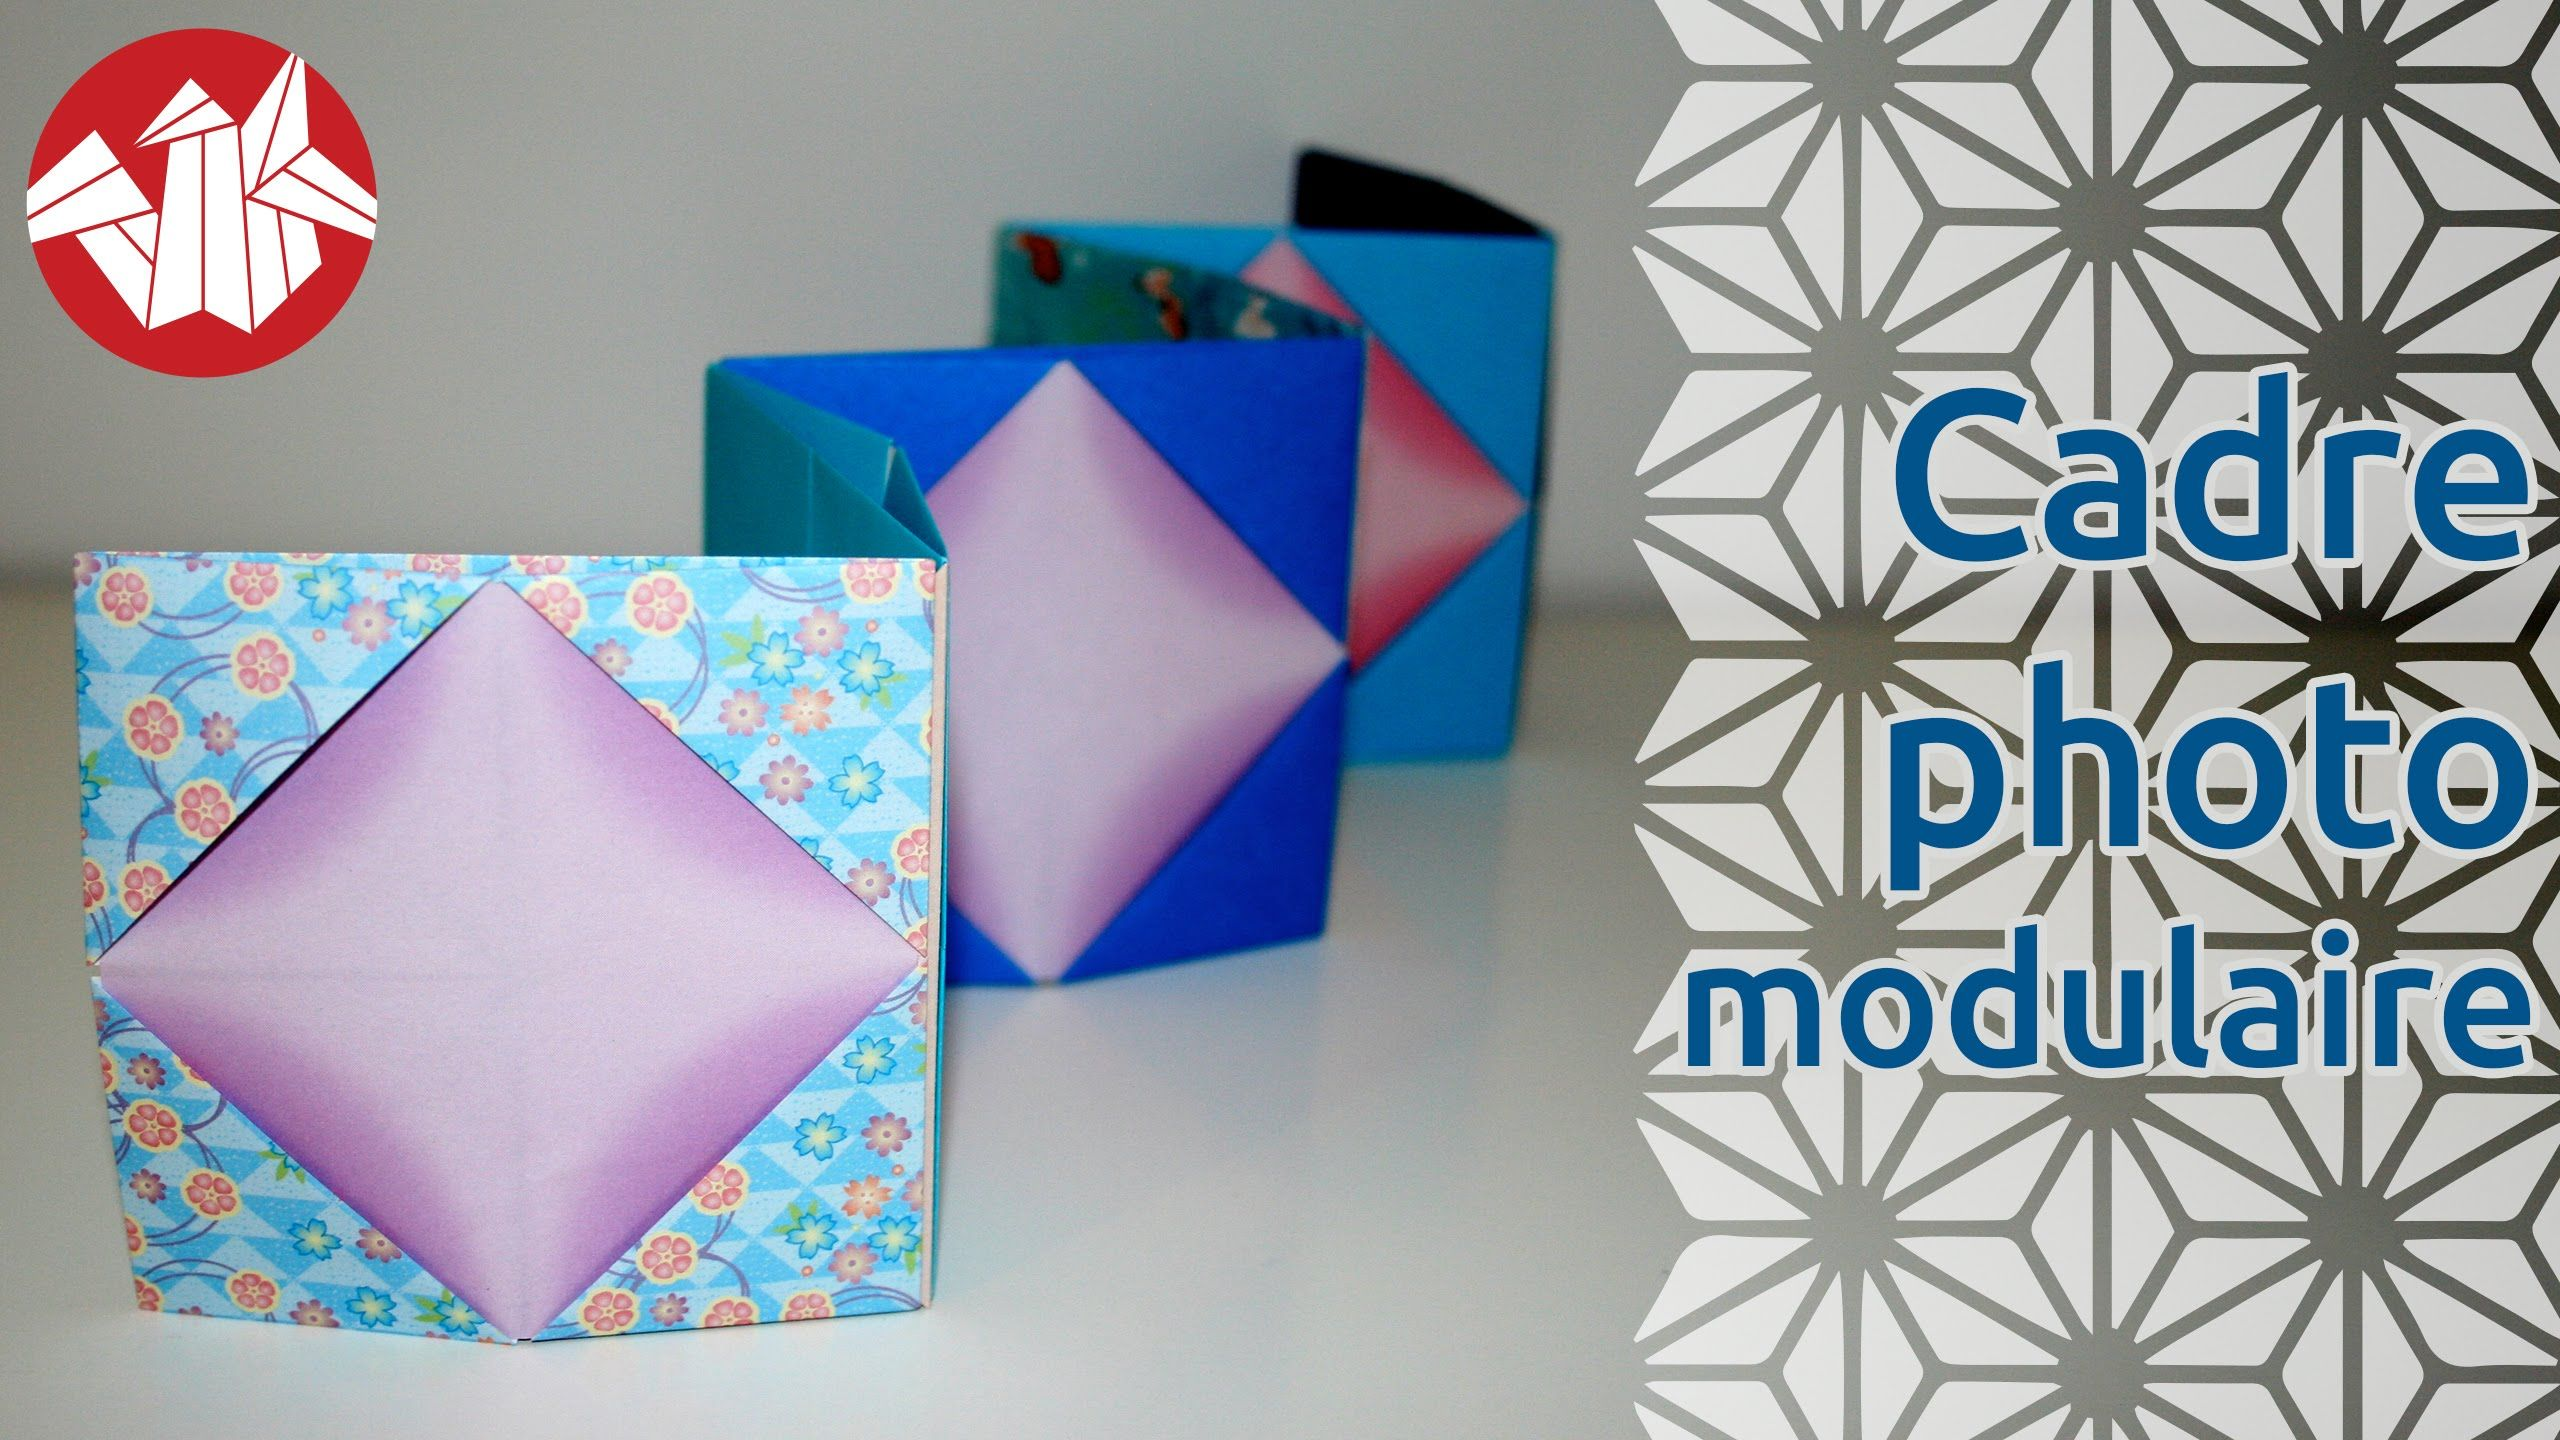 Origami Cadre Photo Modulaire De Tomoko Fuse Modular Photo Frame